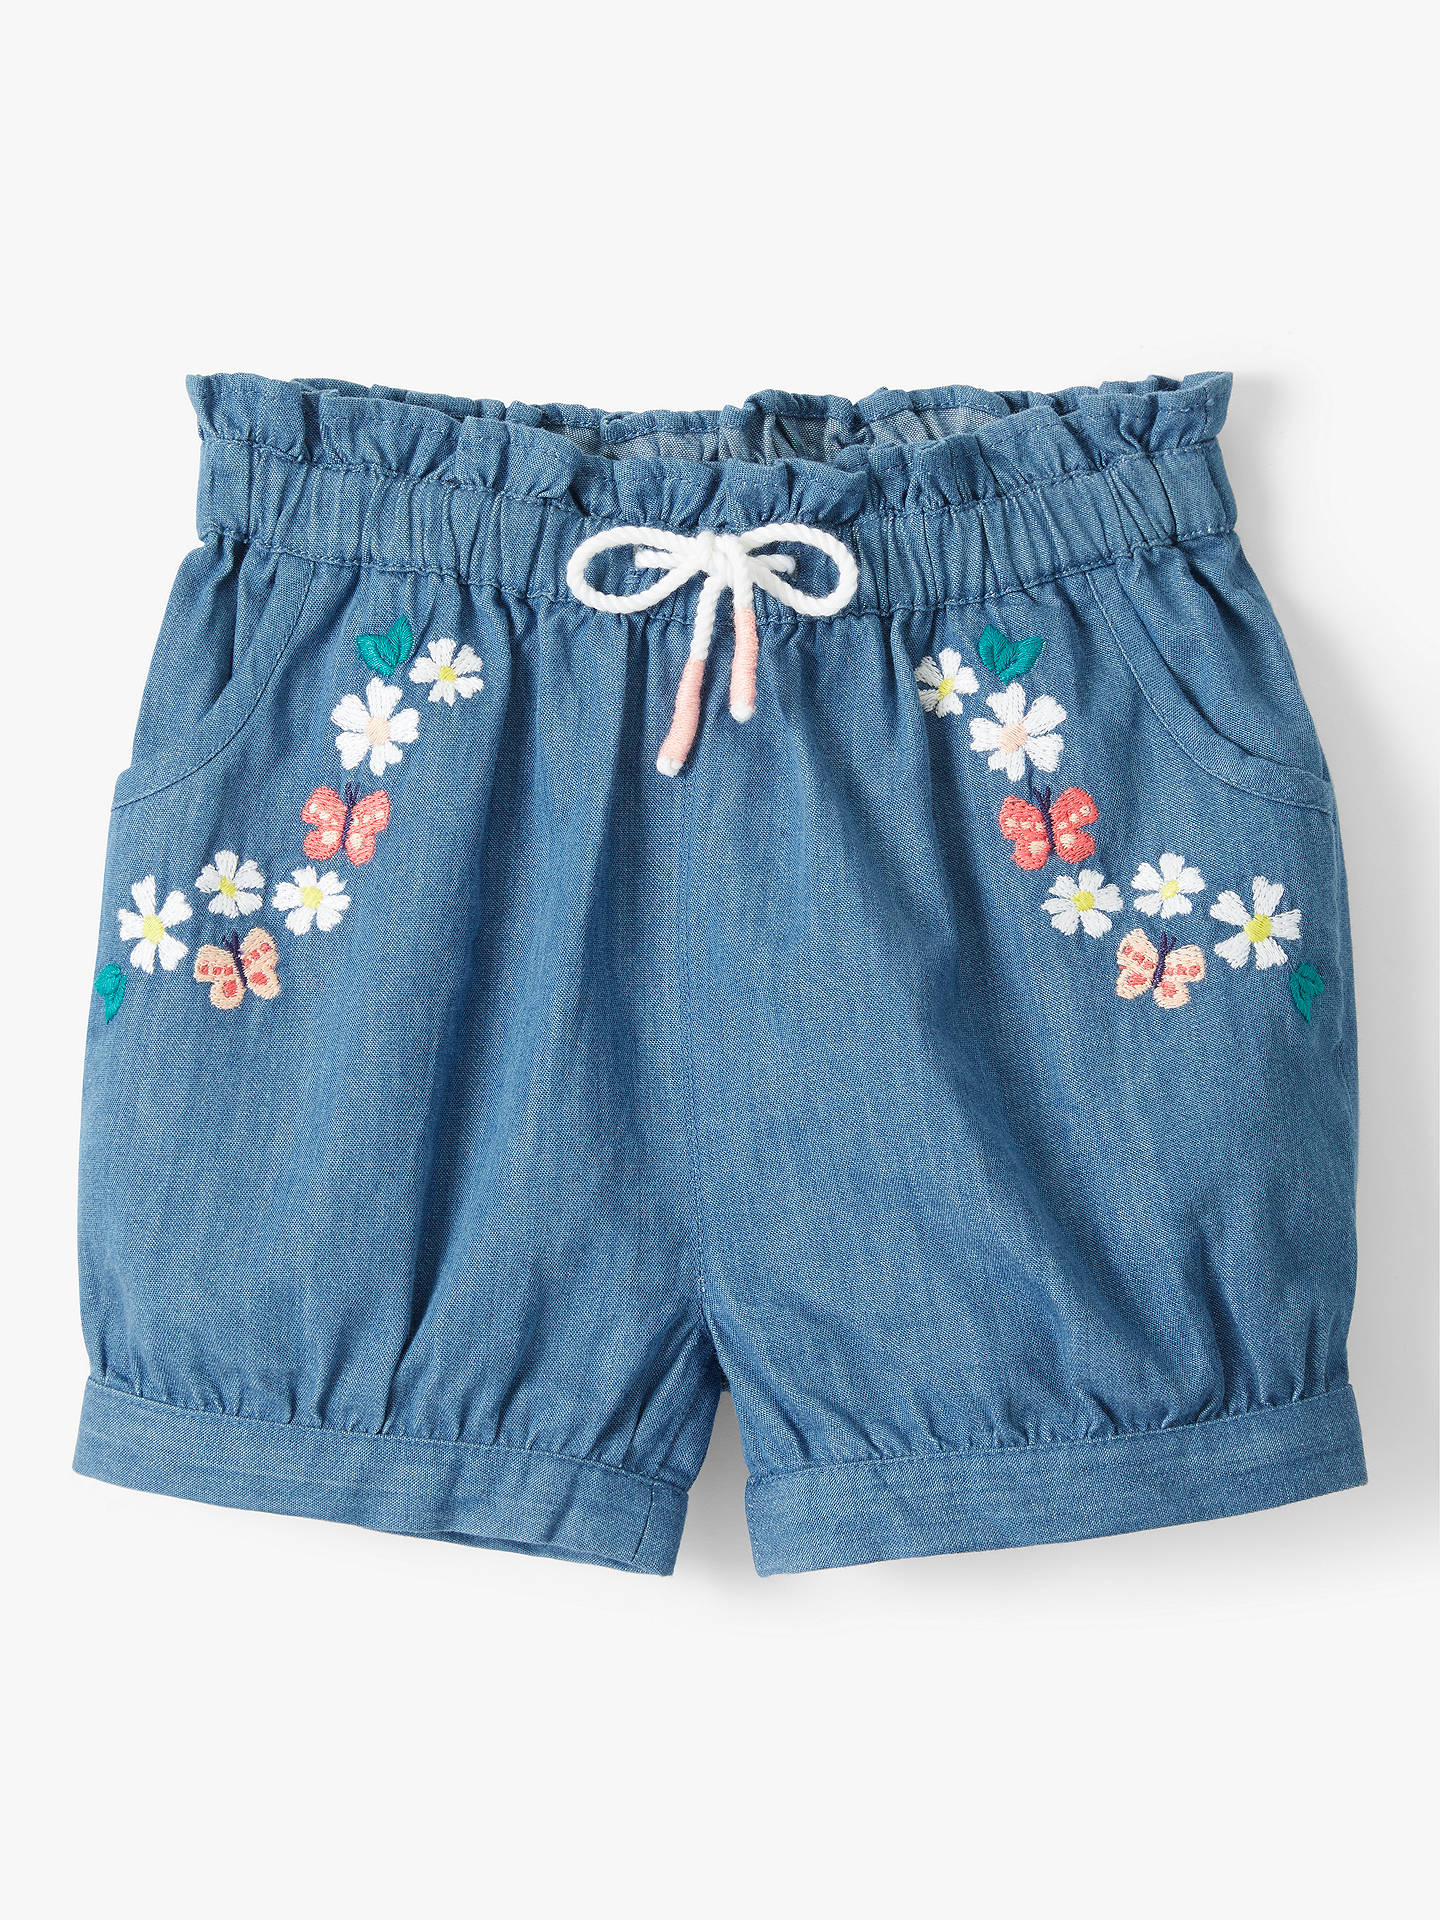 Bottoms Clothing, Shoes & Accessories Baby Boys 12-18 Mth Shorts Denim Long Next Cotton Blue Drawstring Elastic Waist Sophisticated Technologies